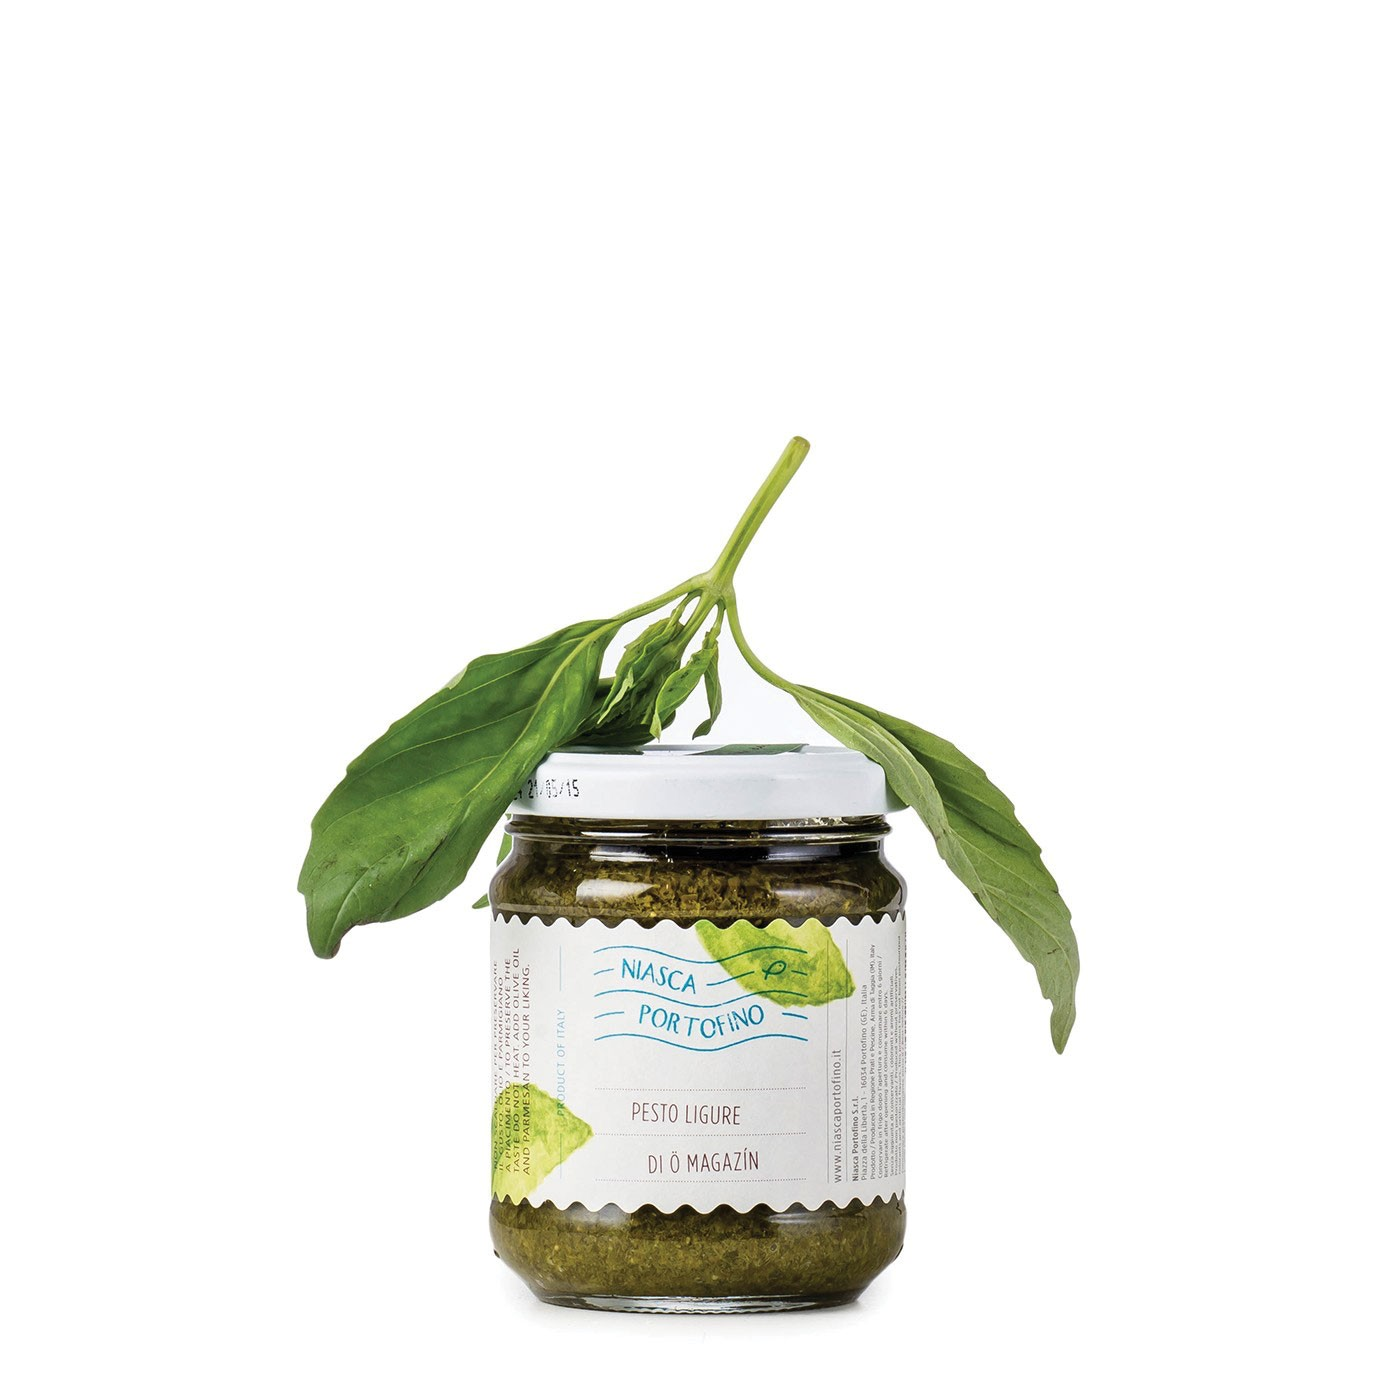 Ligurian Pesto 6.35oz